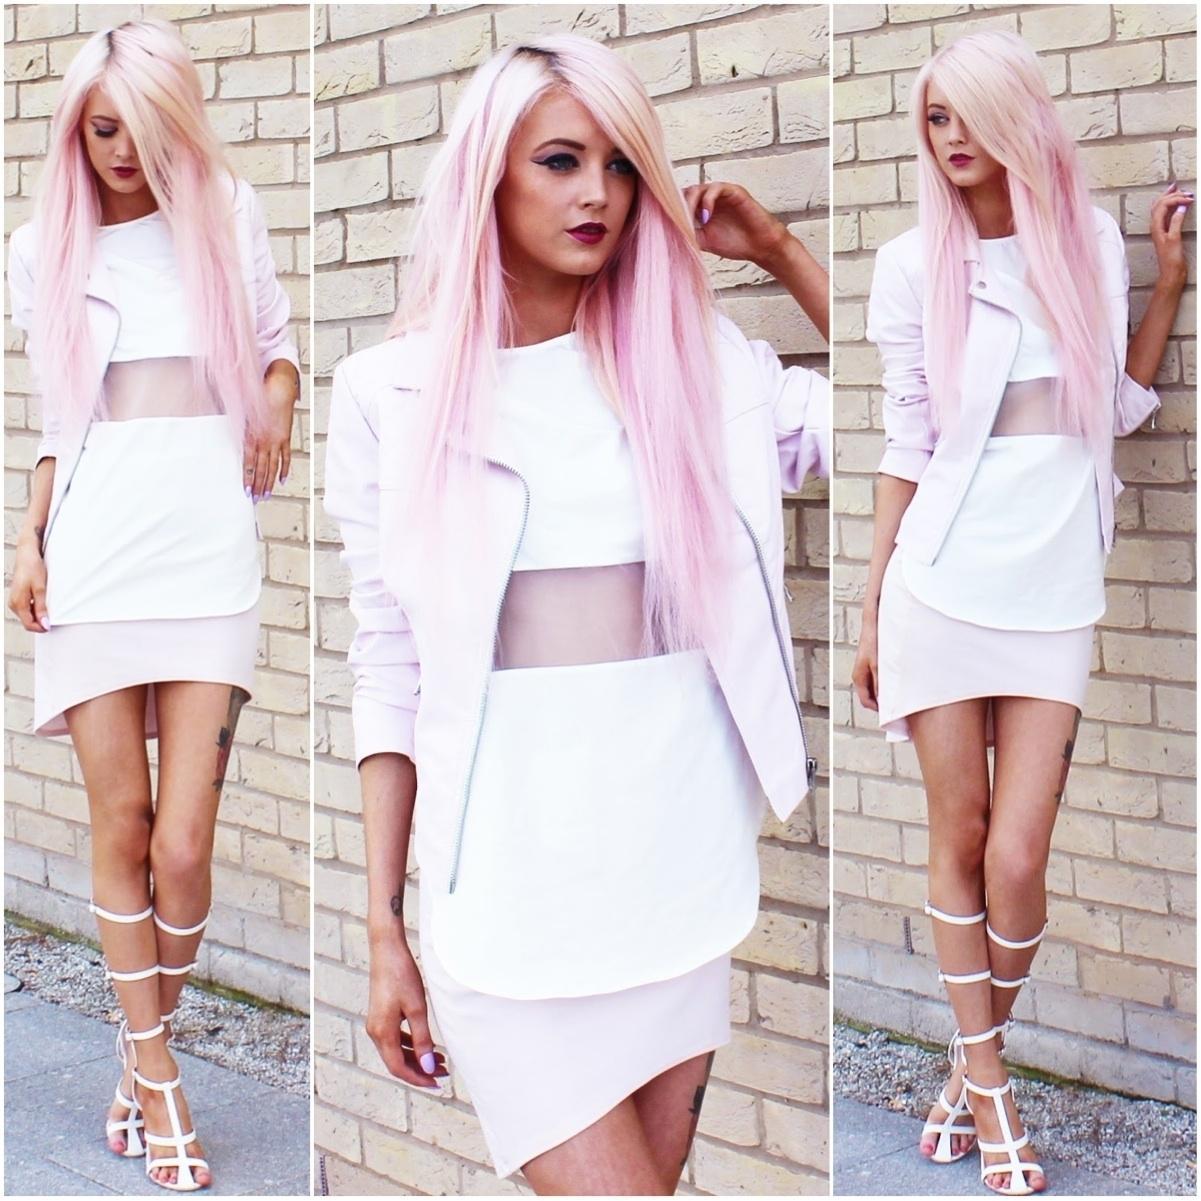 20% OFF our Sheer Mesh Panel Top worn by blogger Kirsty Mooney http://t.co/7MrACD4gkj #fbloggers http://t.co/Ydh9ydOH0E